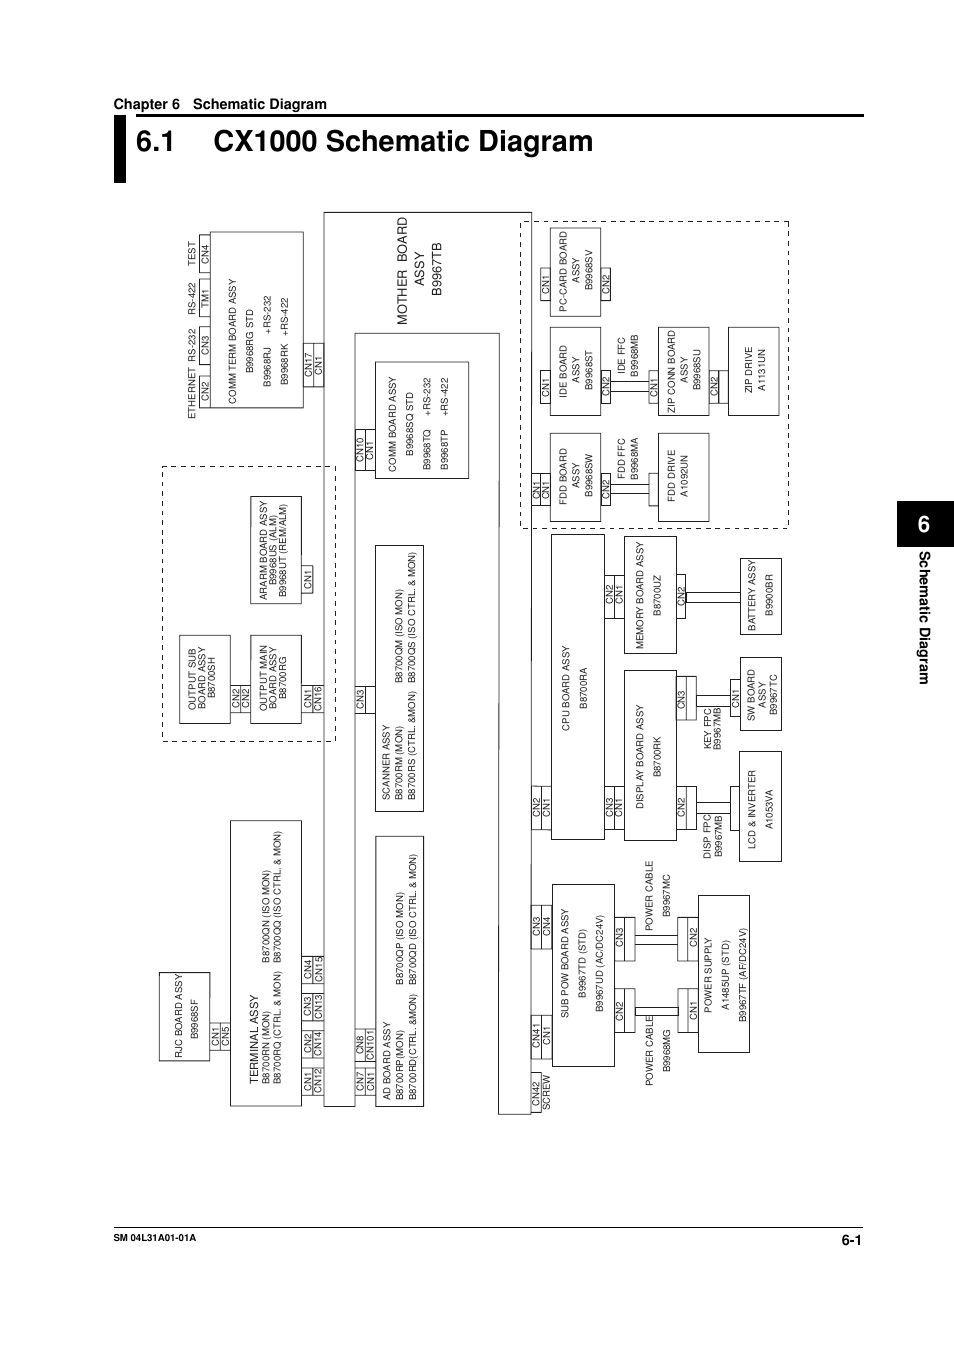 hight resolution of chapter 6 schematic diagram 1 cx1000 schematic diagram cx1000 schematic diagram 1 yokogawa data acquisition with pid control cx2000 user manual page